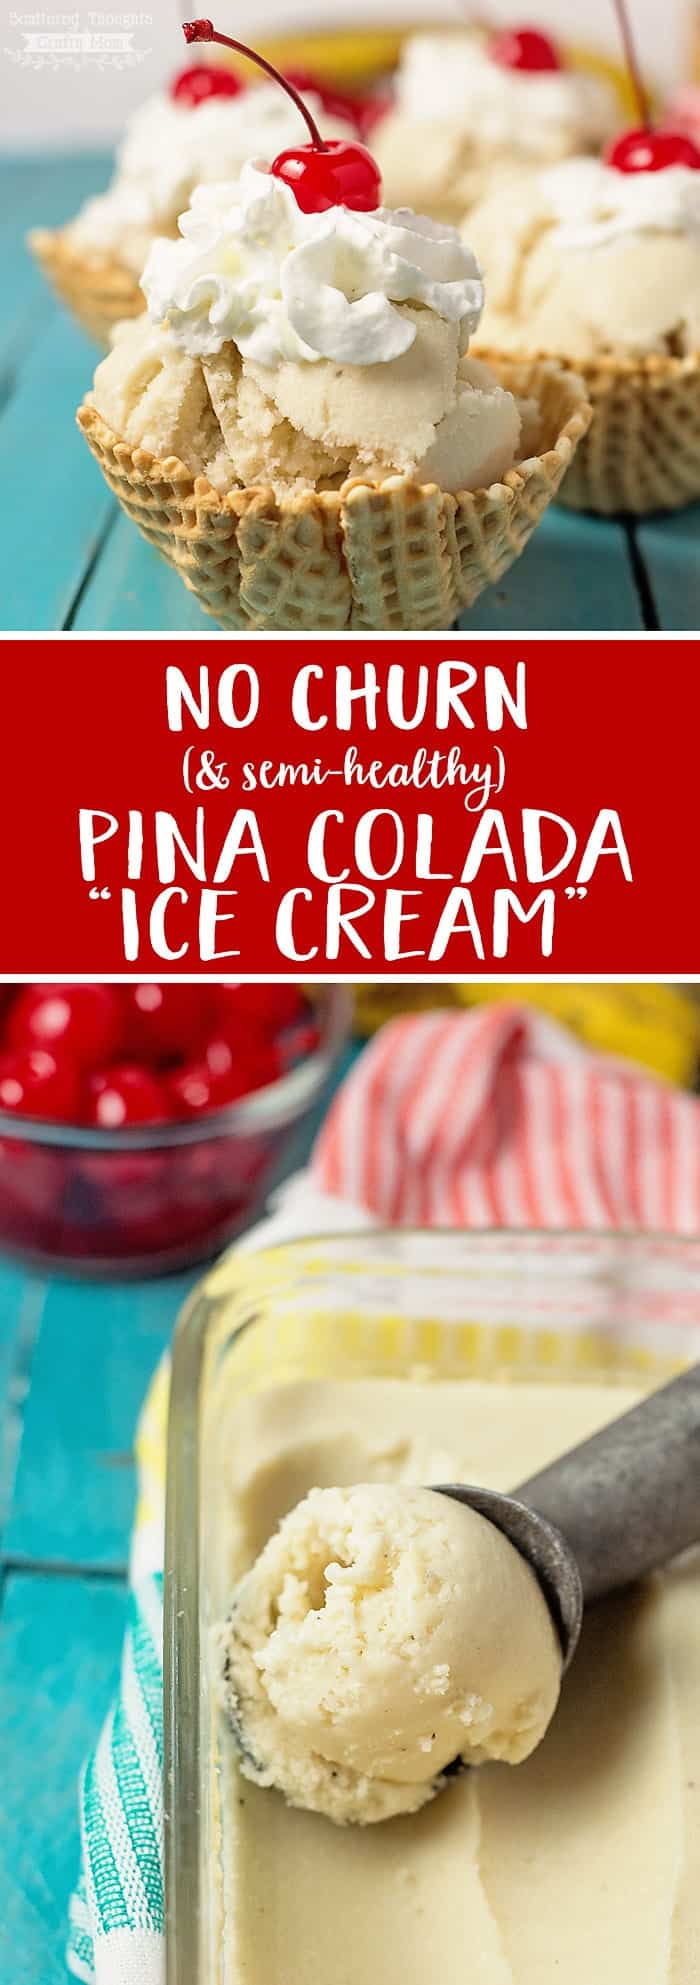 "This Piña Colada ""Ice Cream"" is easy to make, (no ice cream maker needed) low in sugar, and makes a fabulous healthy treat for a hot summer day!"